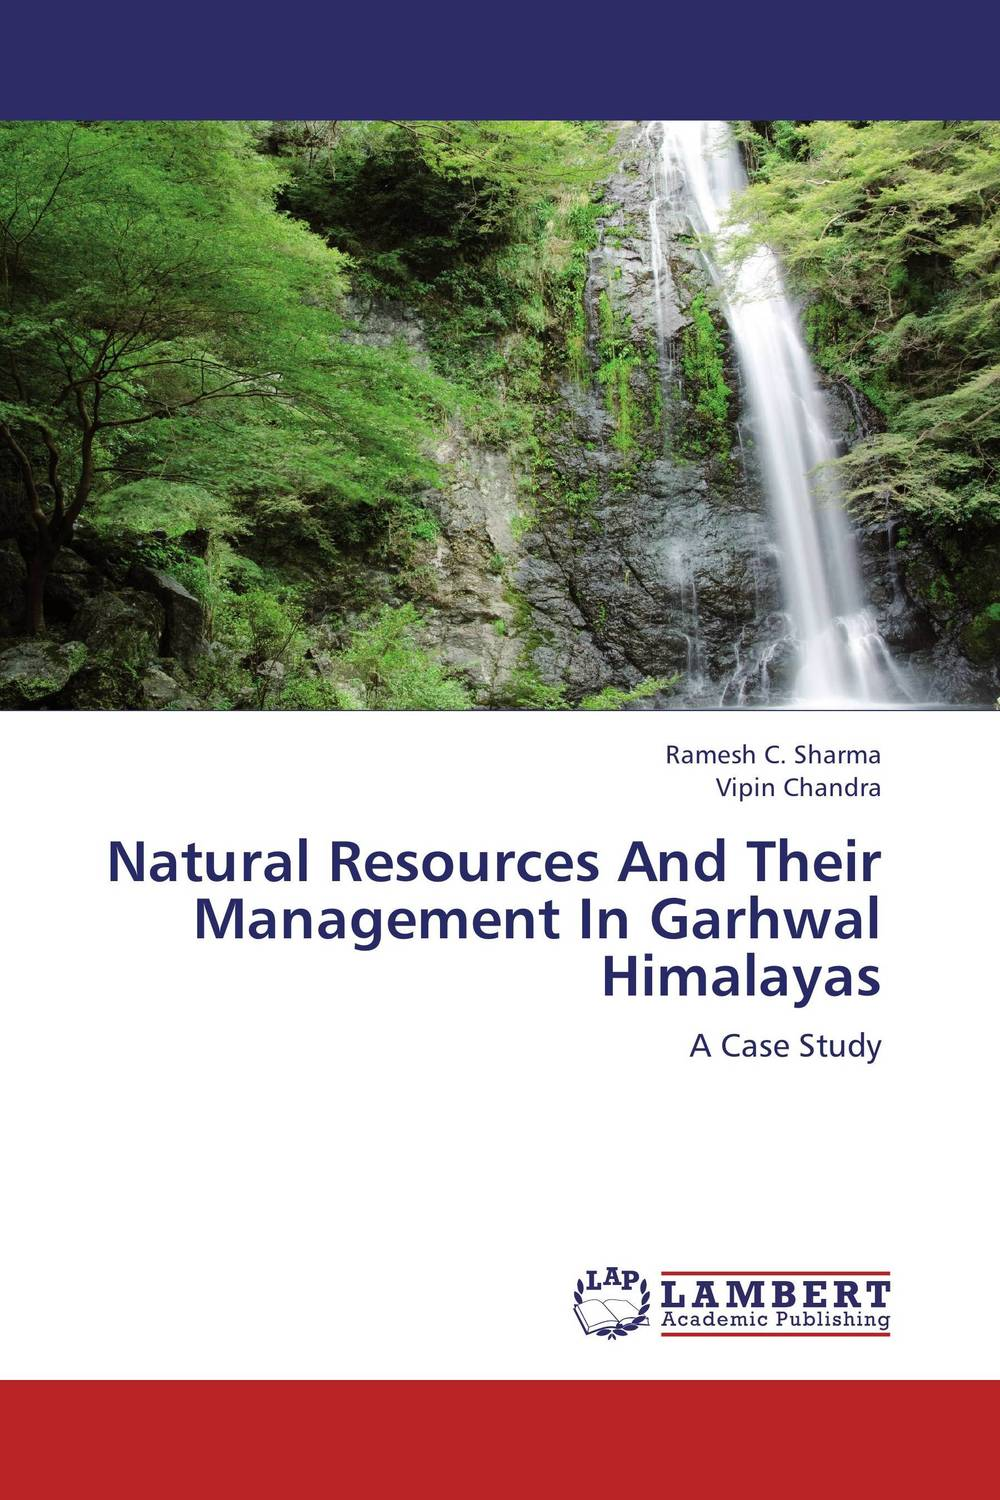 Natural Resources And Their Management In Garhwal Himalayas livestock grazing and natural resource management in kumaon hills